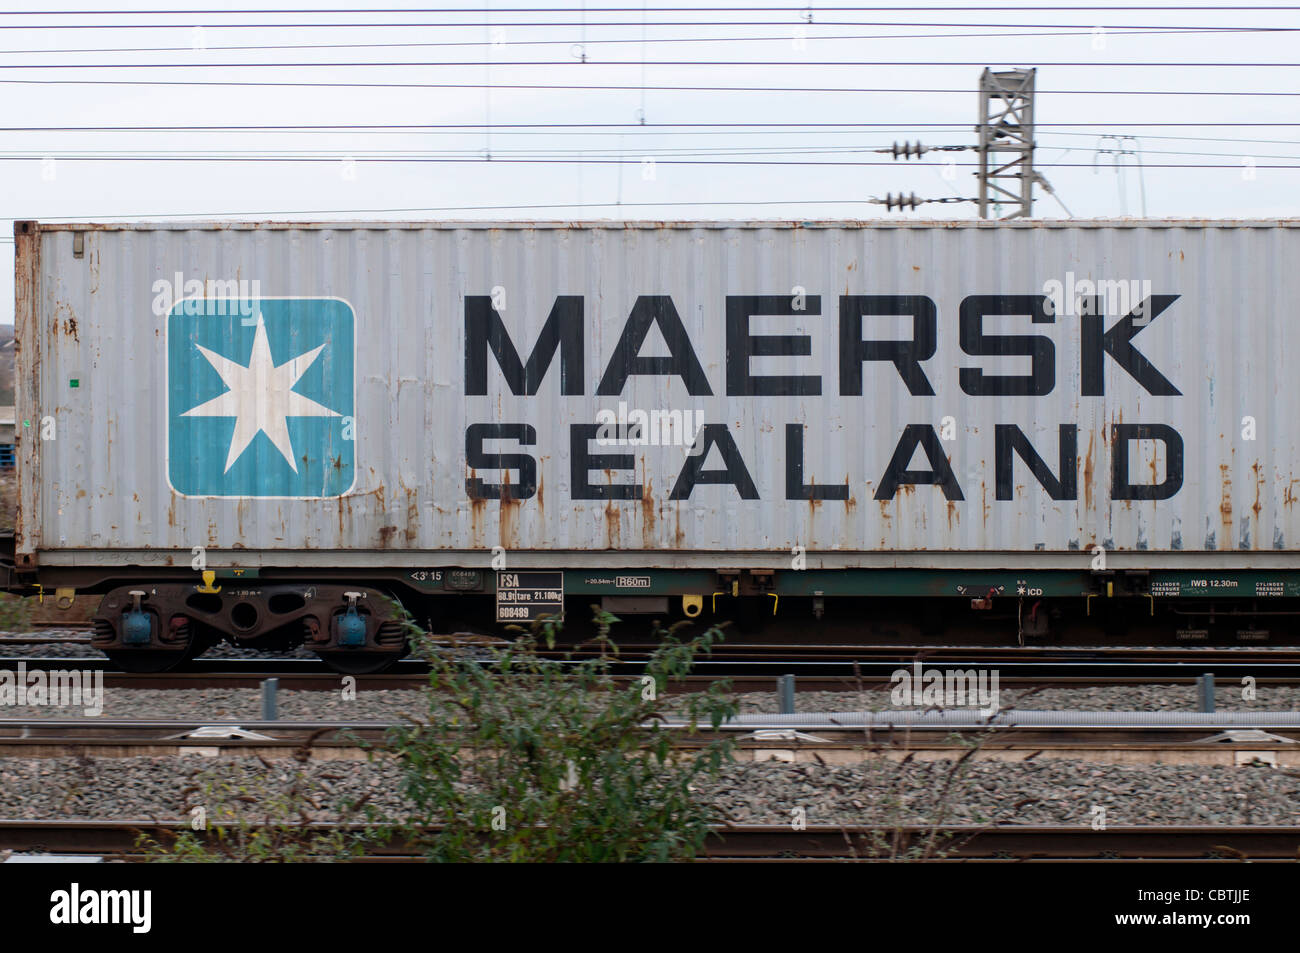 Maersk Sealand shipping container passing through Rugby railway station, UK - Stock Image